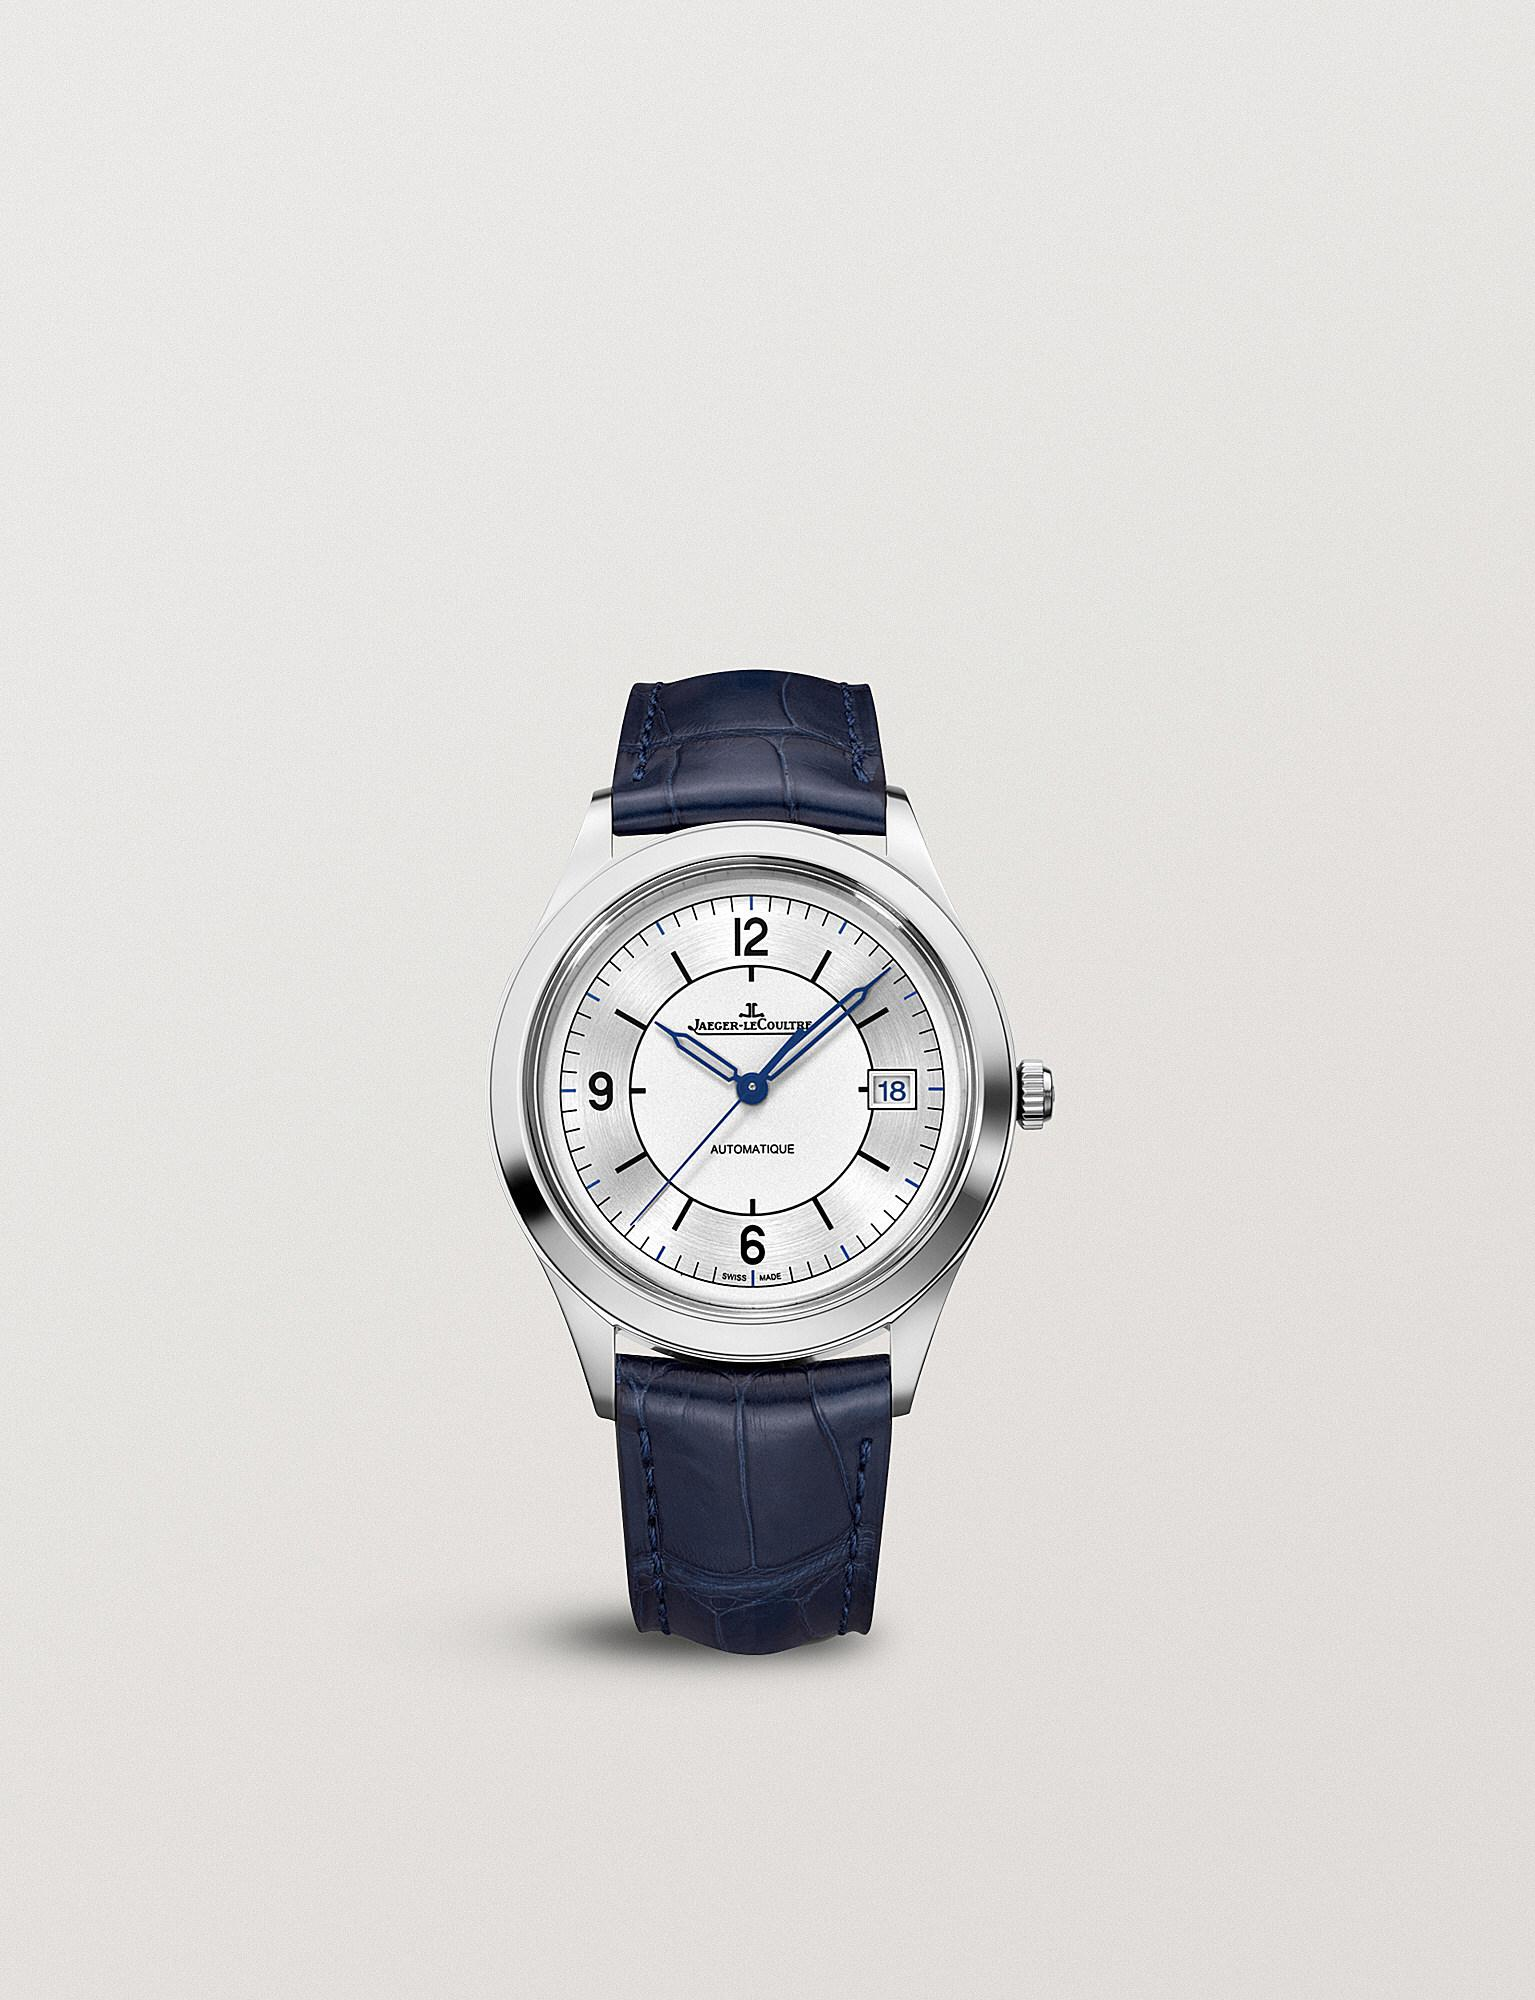 Lyst - Jaeger-lecoultre Q1548530 Master Control Stainless